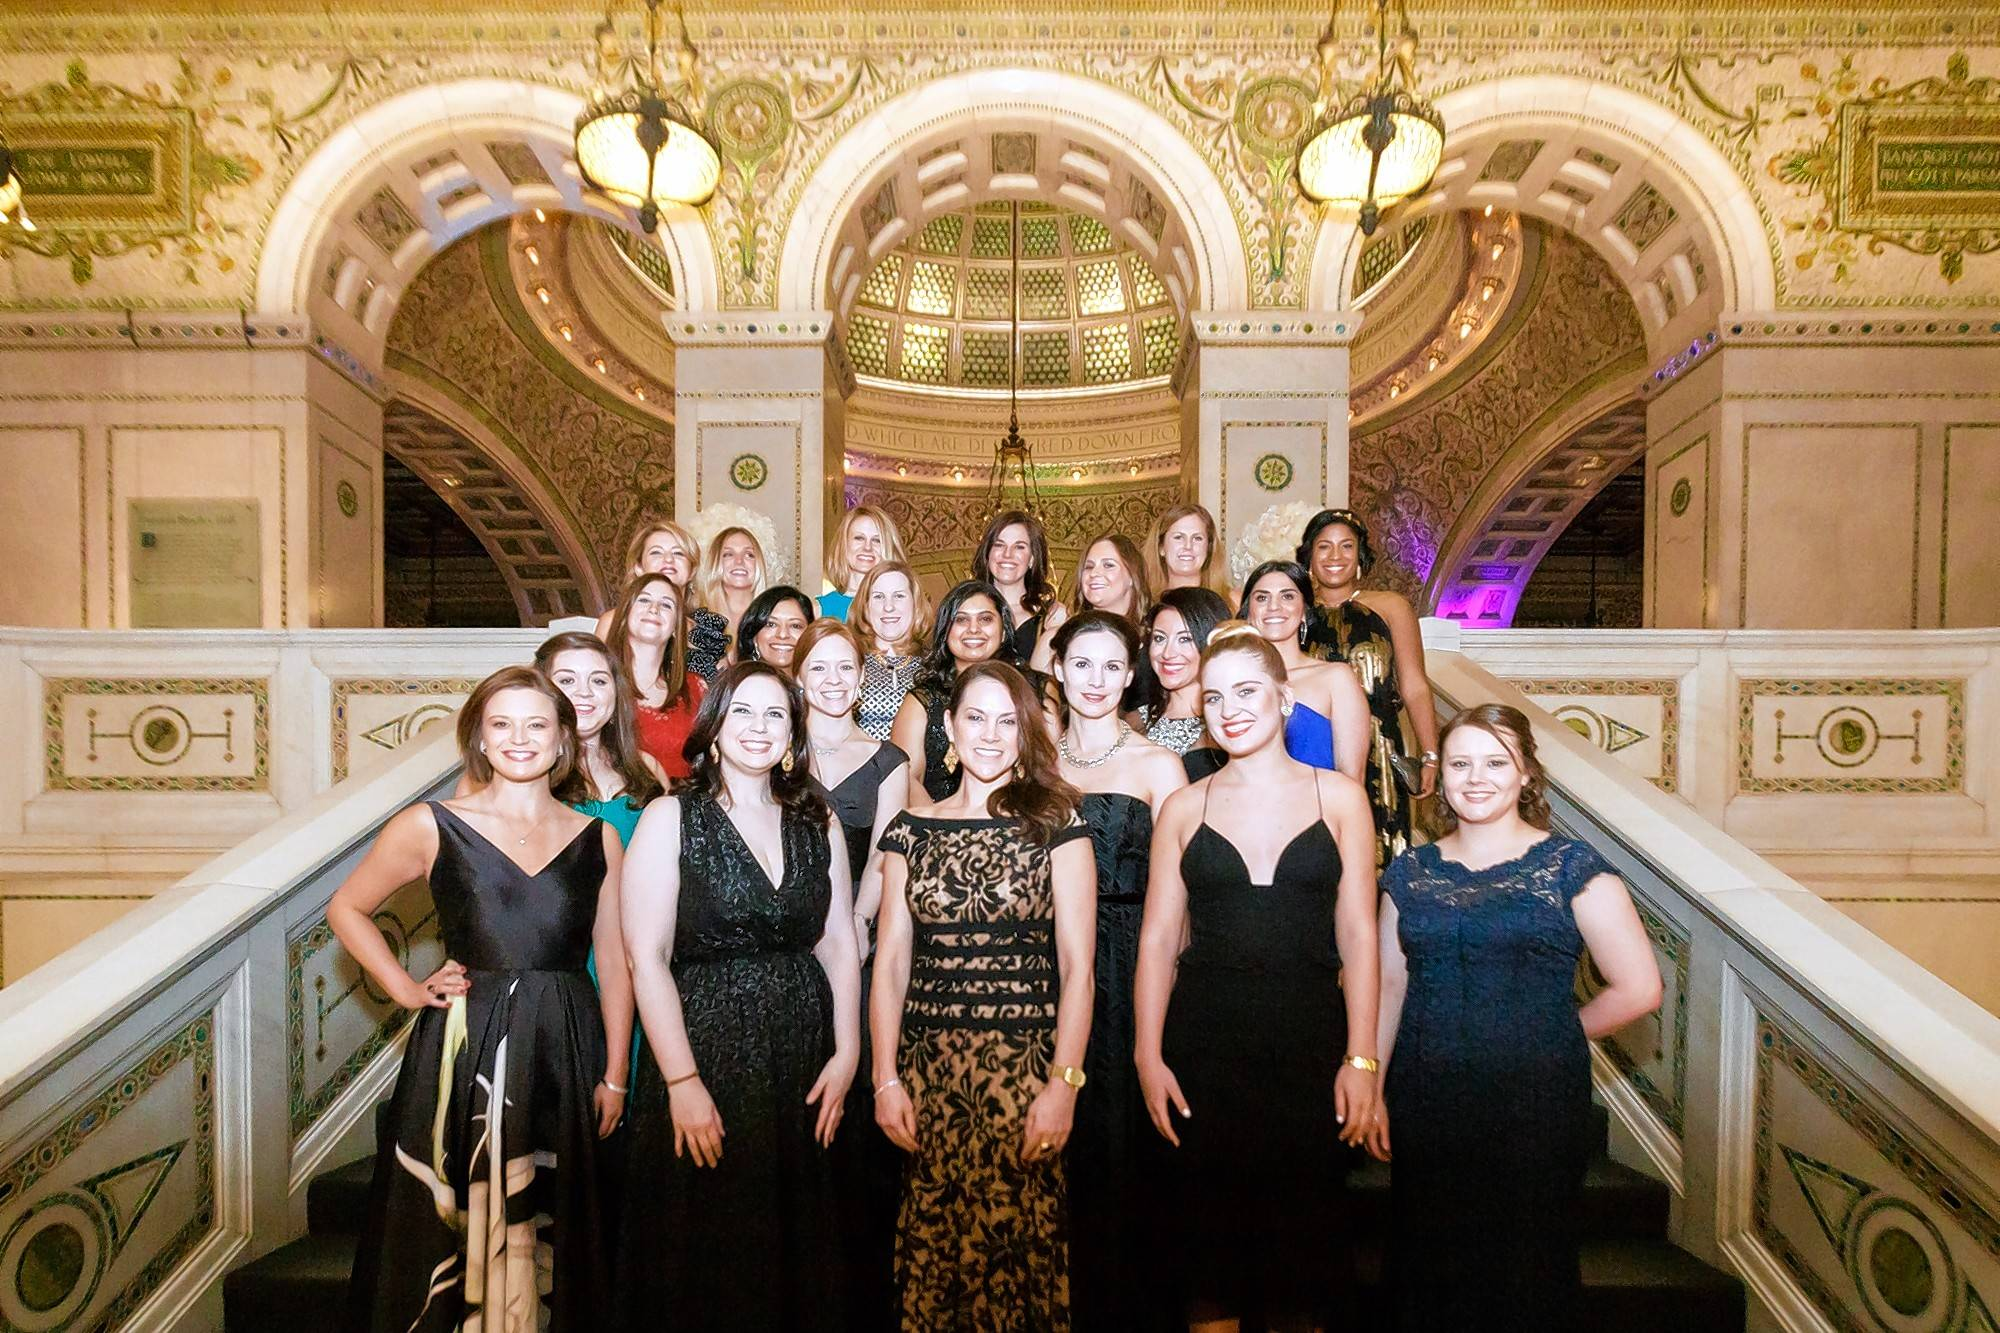 The Junior League of Chicago Gala Committee members in Preston Bradley Hall of the Chicago Cultural Center on March 5.